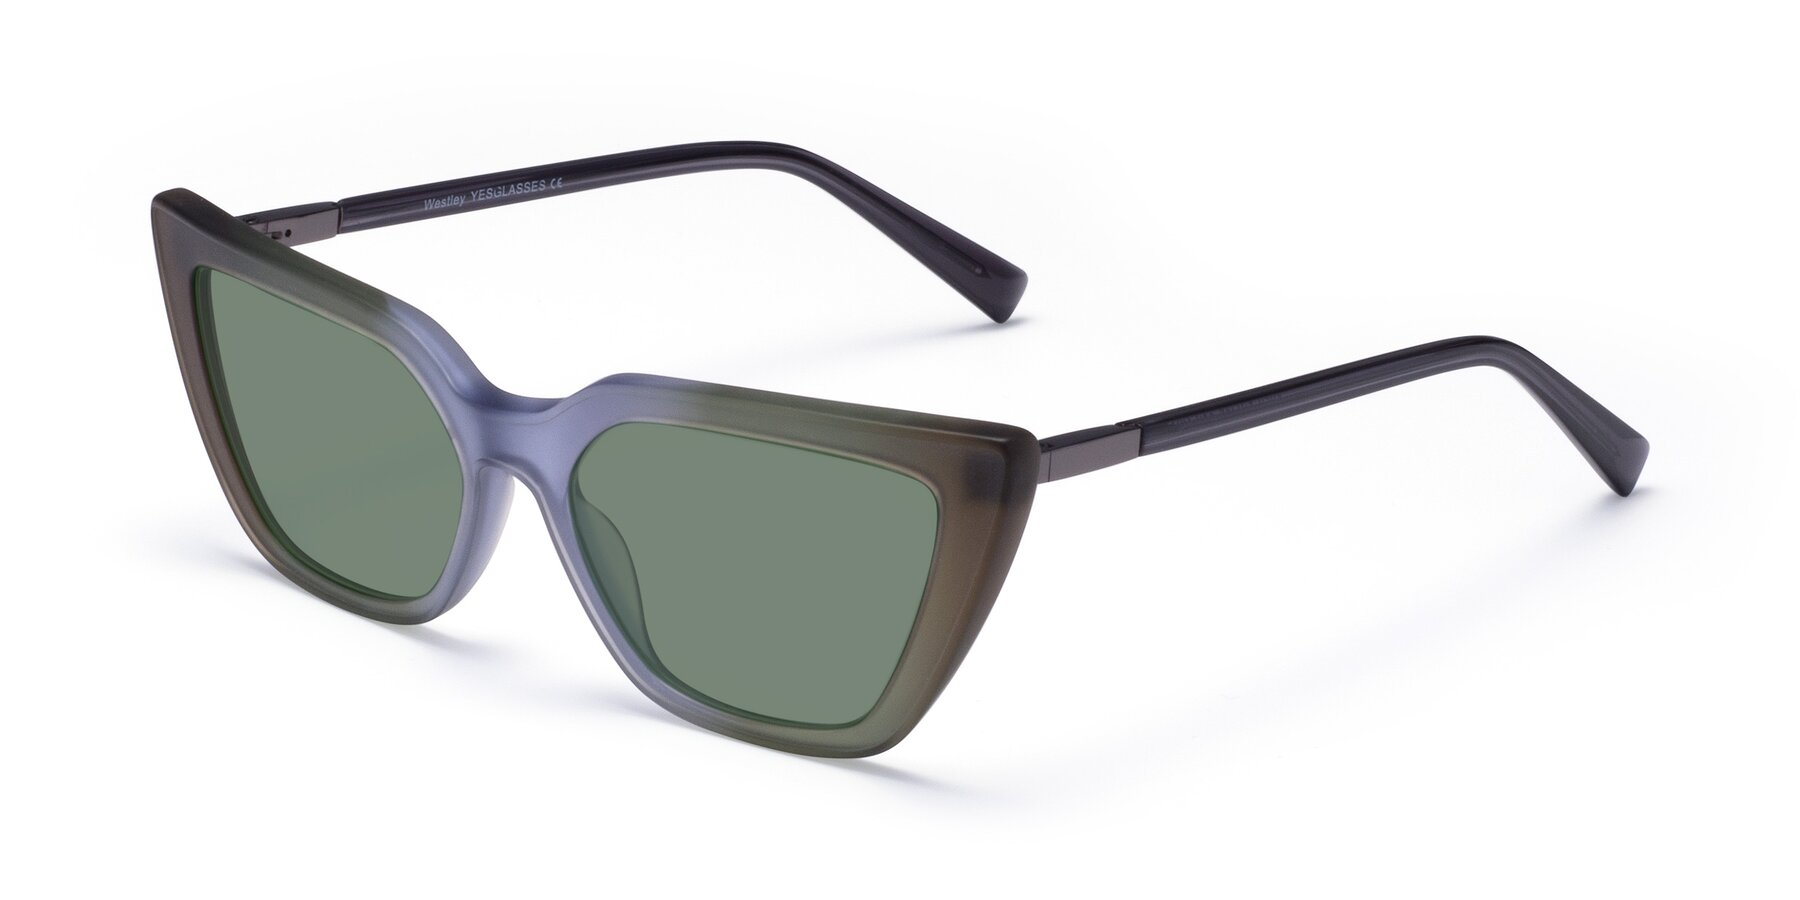 Angle of Westley in Gradient Green with Medium Green Tinted Lenses